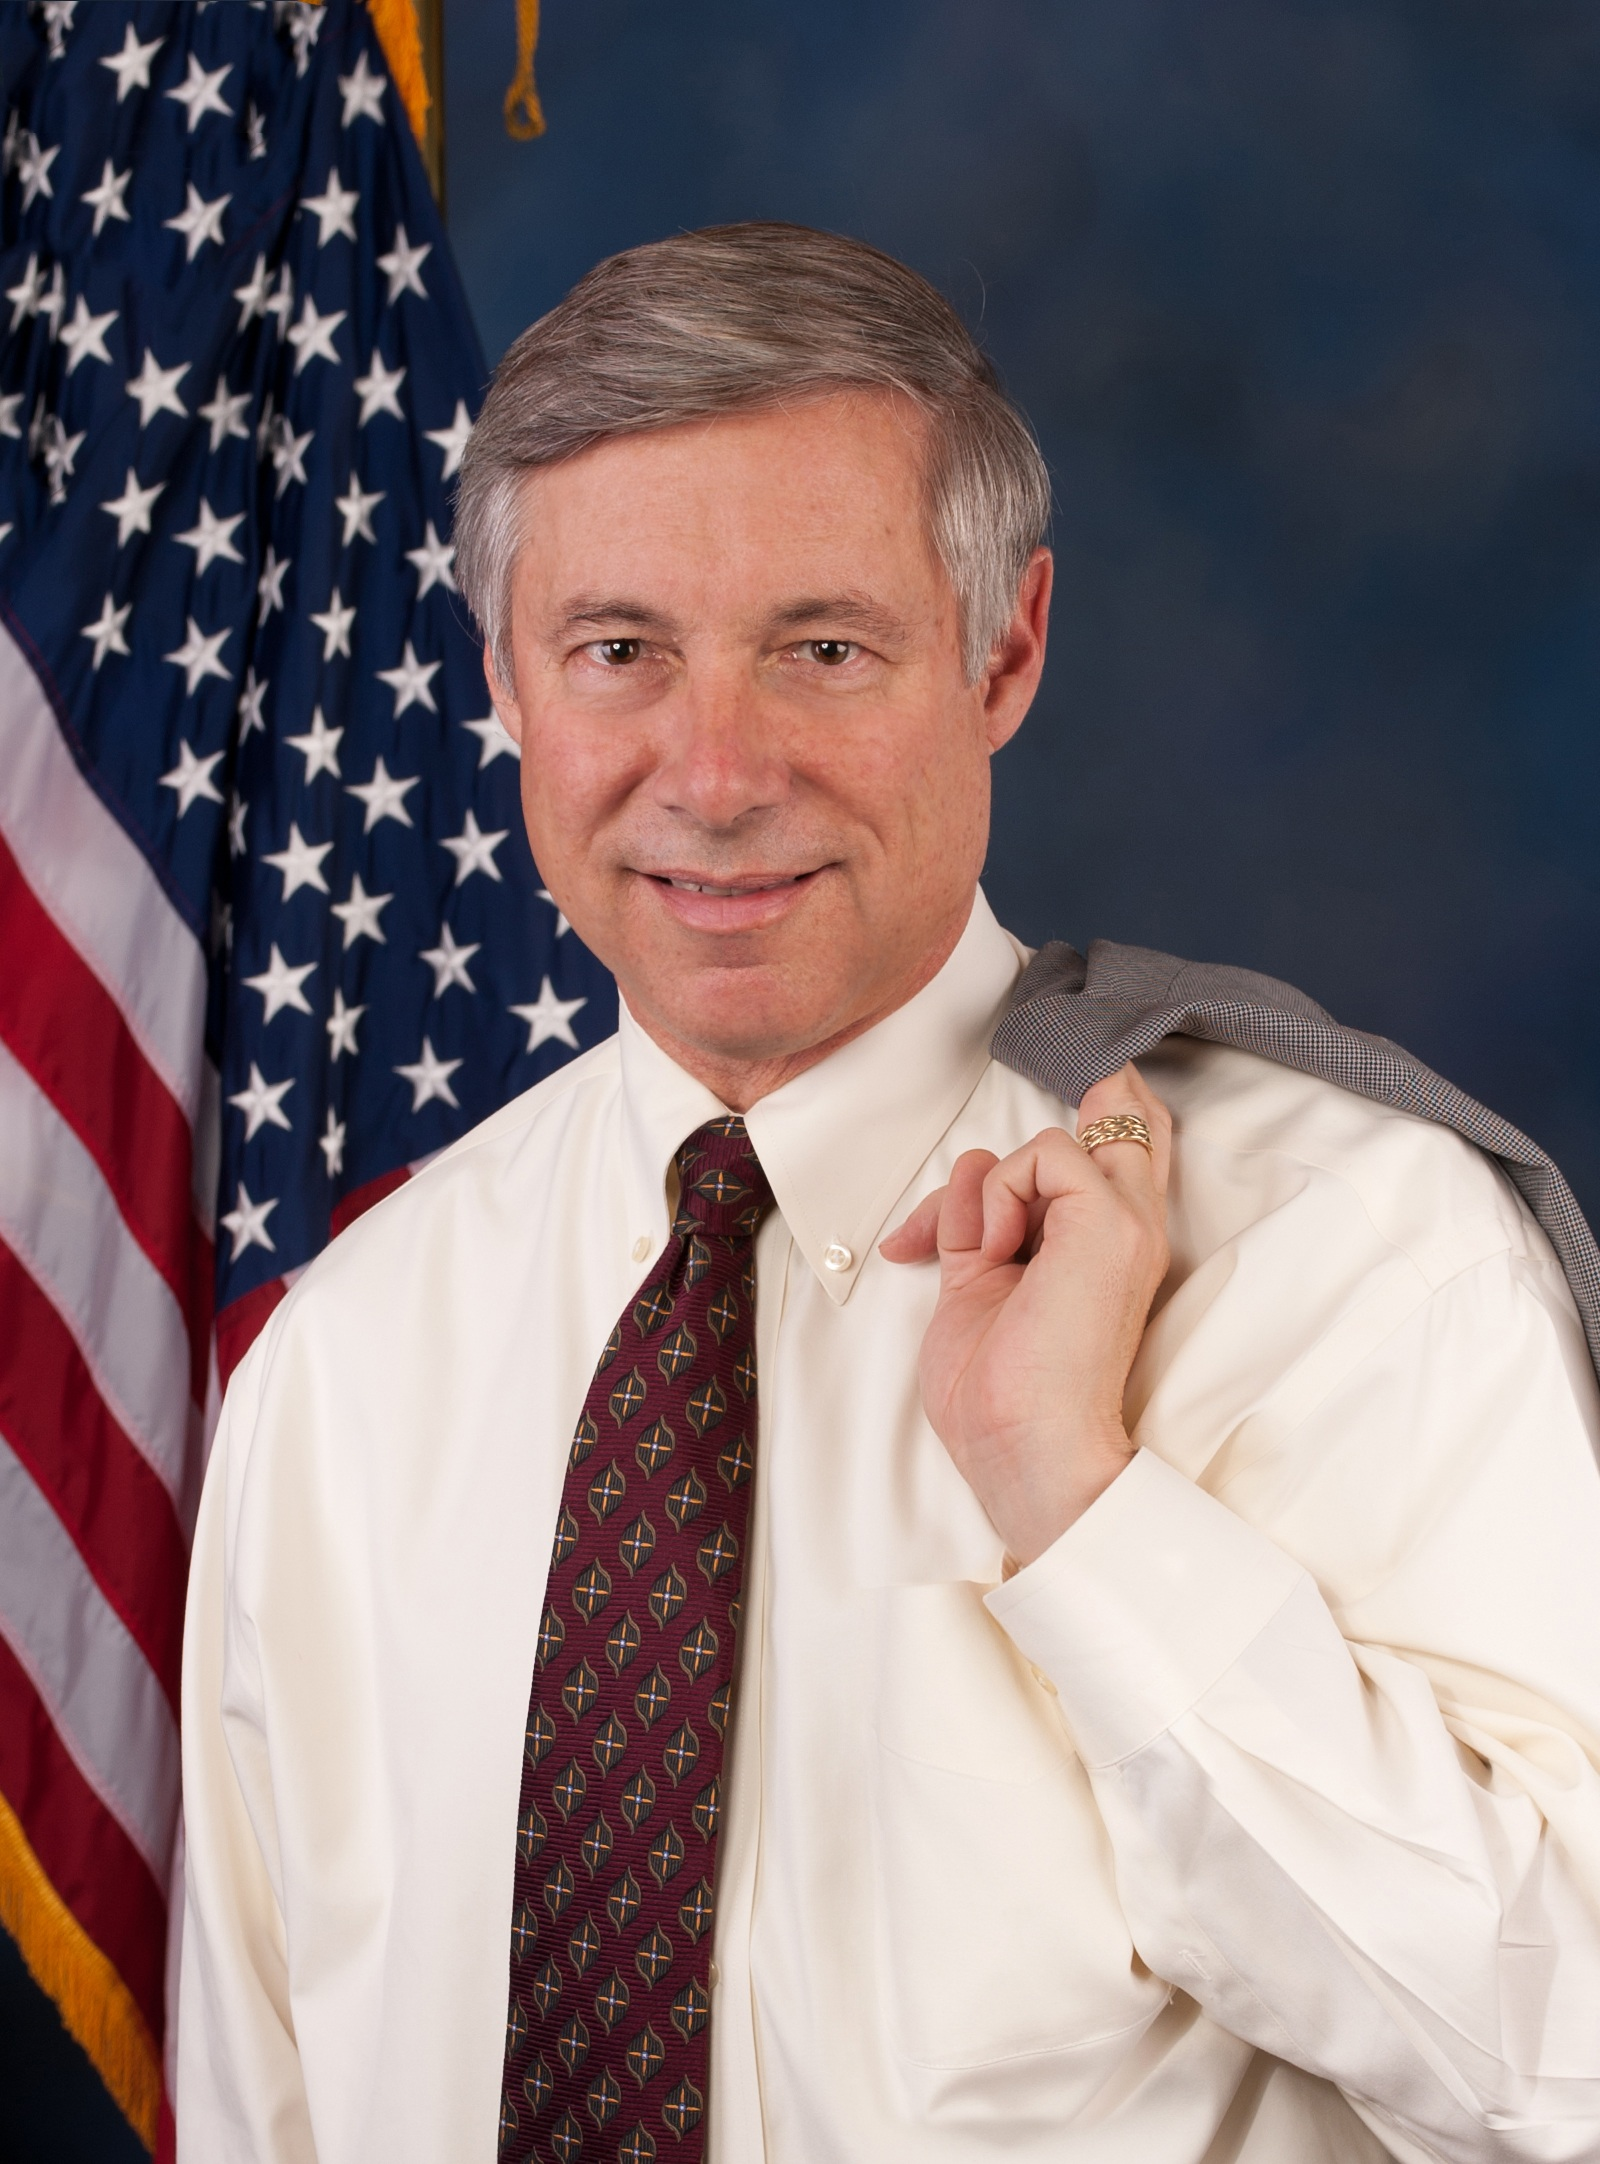 Fred Upton 113th Congress photo